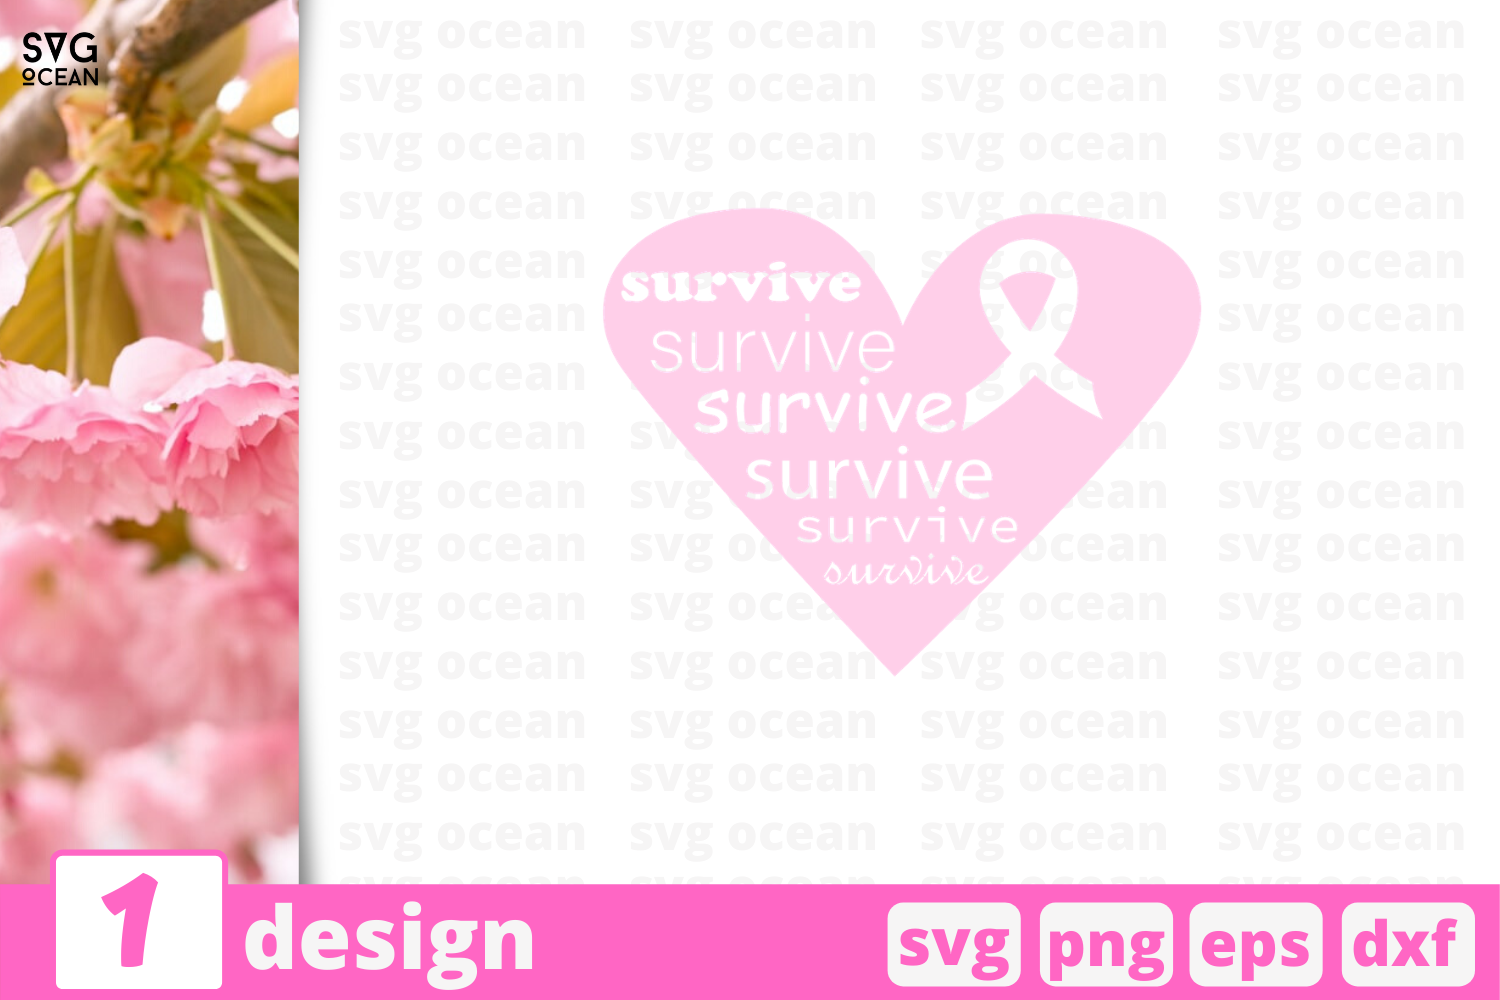 Download Free Survive Graphic By Svgocean Creative Fabrica for Cricut Explore, Silhouette and other cutting machines.